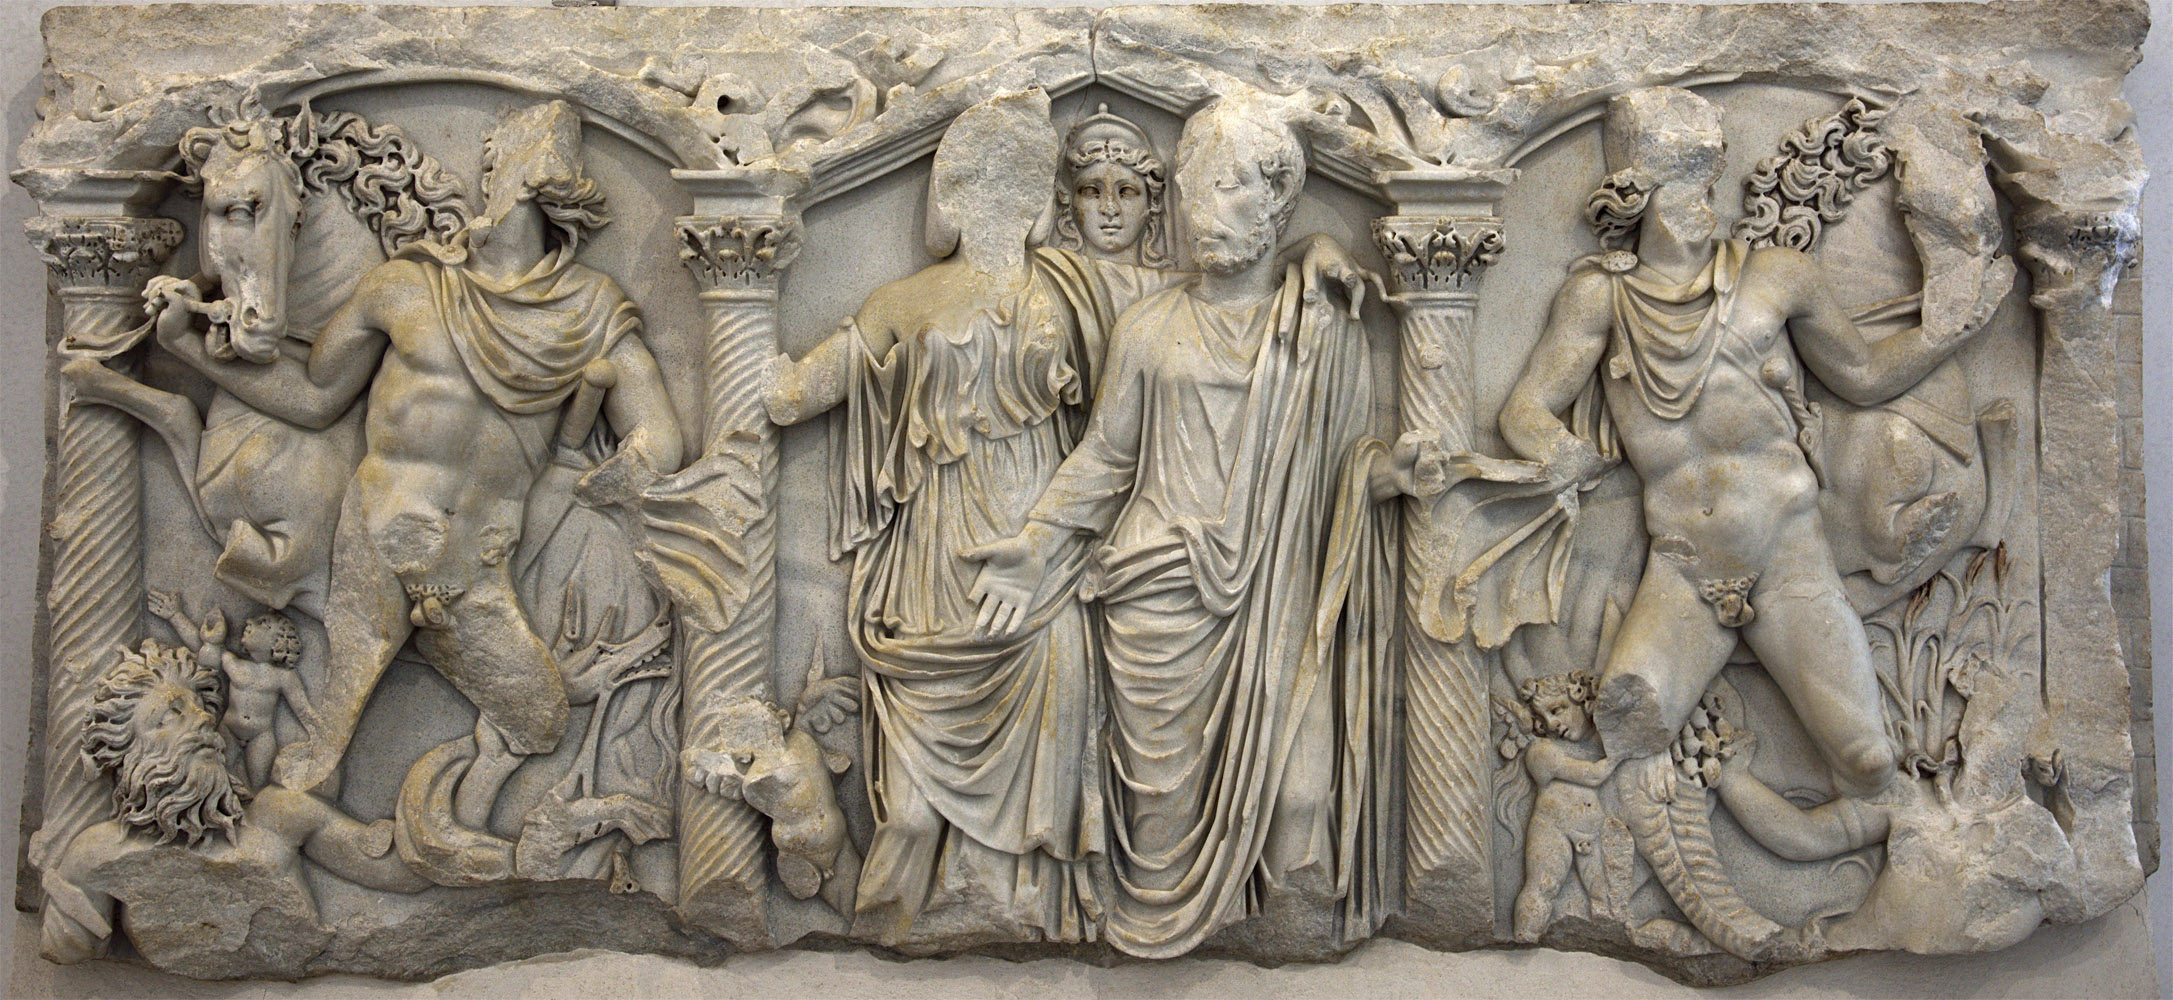 Sarcophagus of a married couple with Dioscuri. Front panel. Marble. 240—260 CE. Rome, Roman National Museum, Palazzo Massimo alle Terme